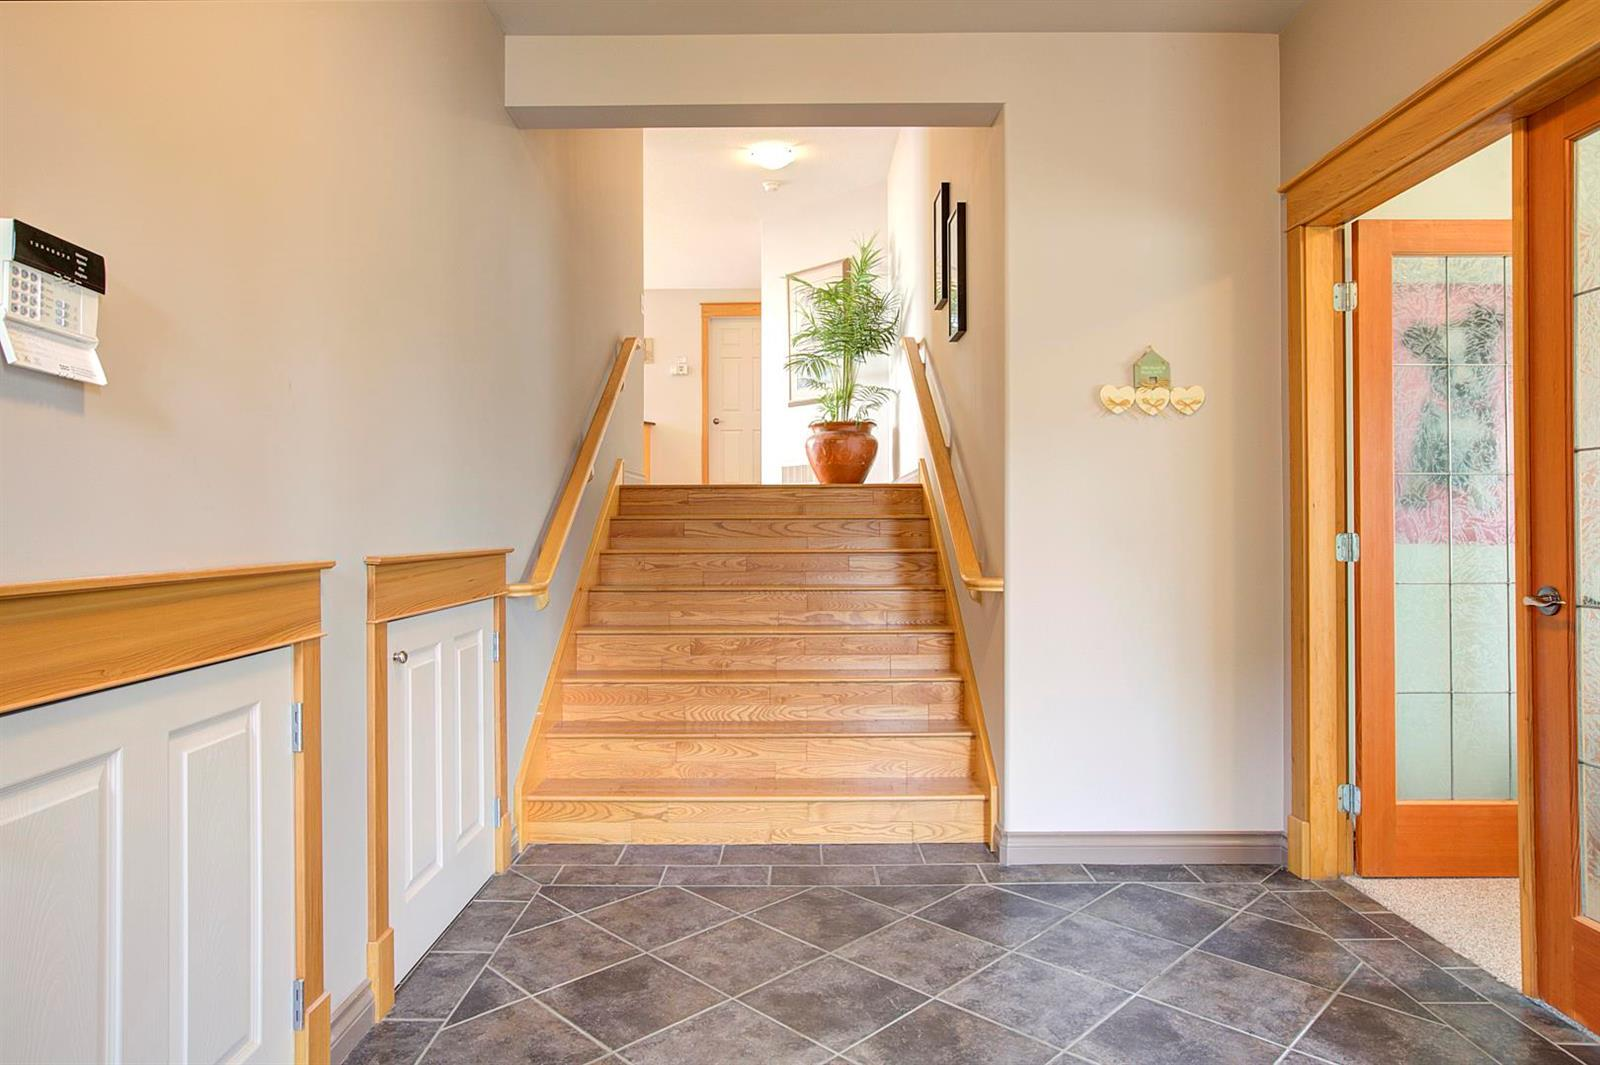 #203 3473 Lakeview Place,, Enderby, British Columbia  V0E 1V5 - Photo 11 - 10229003